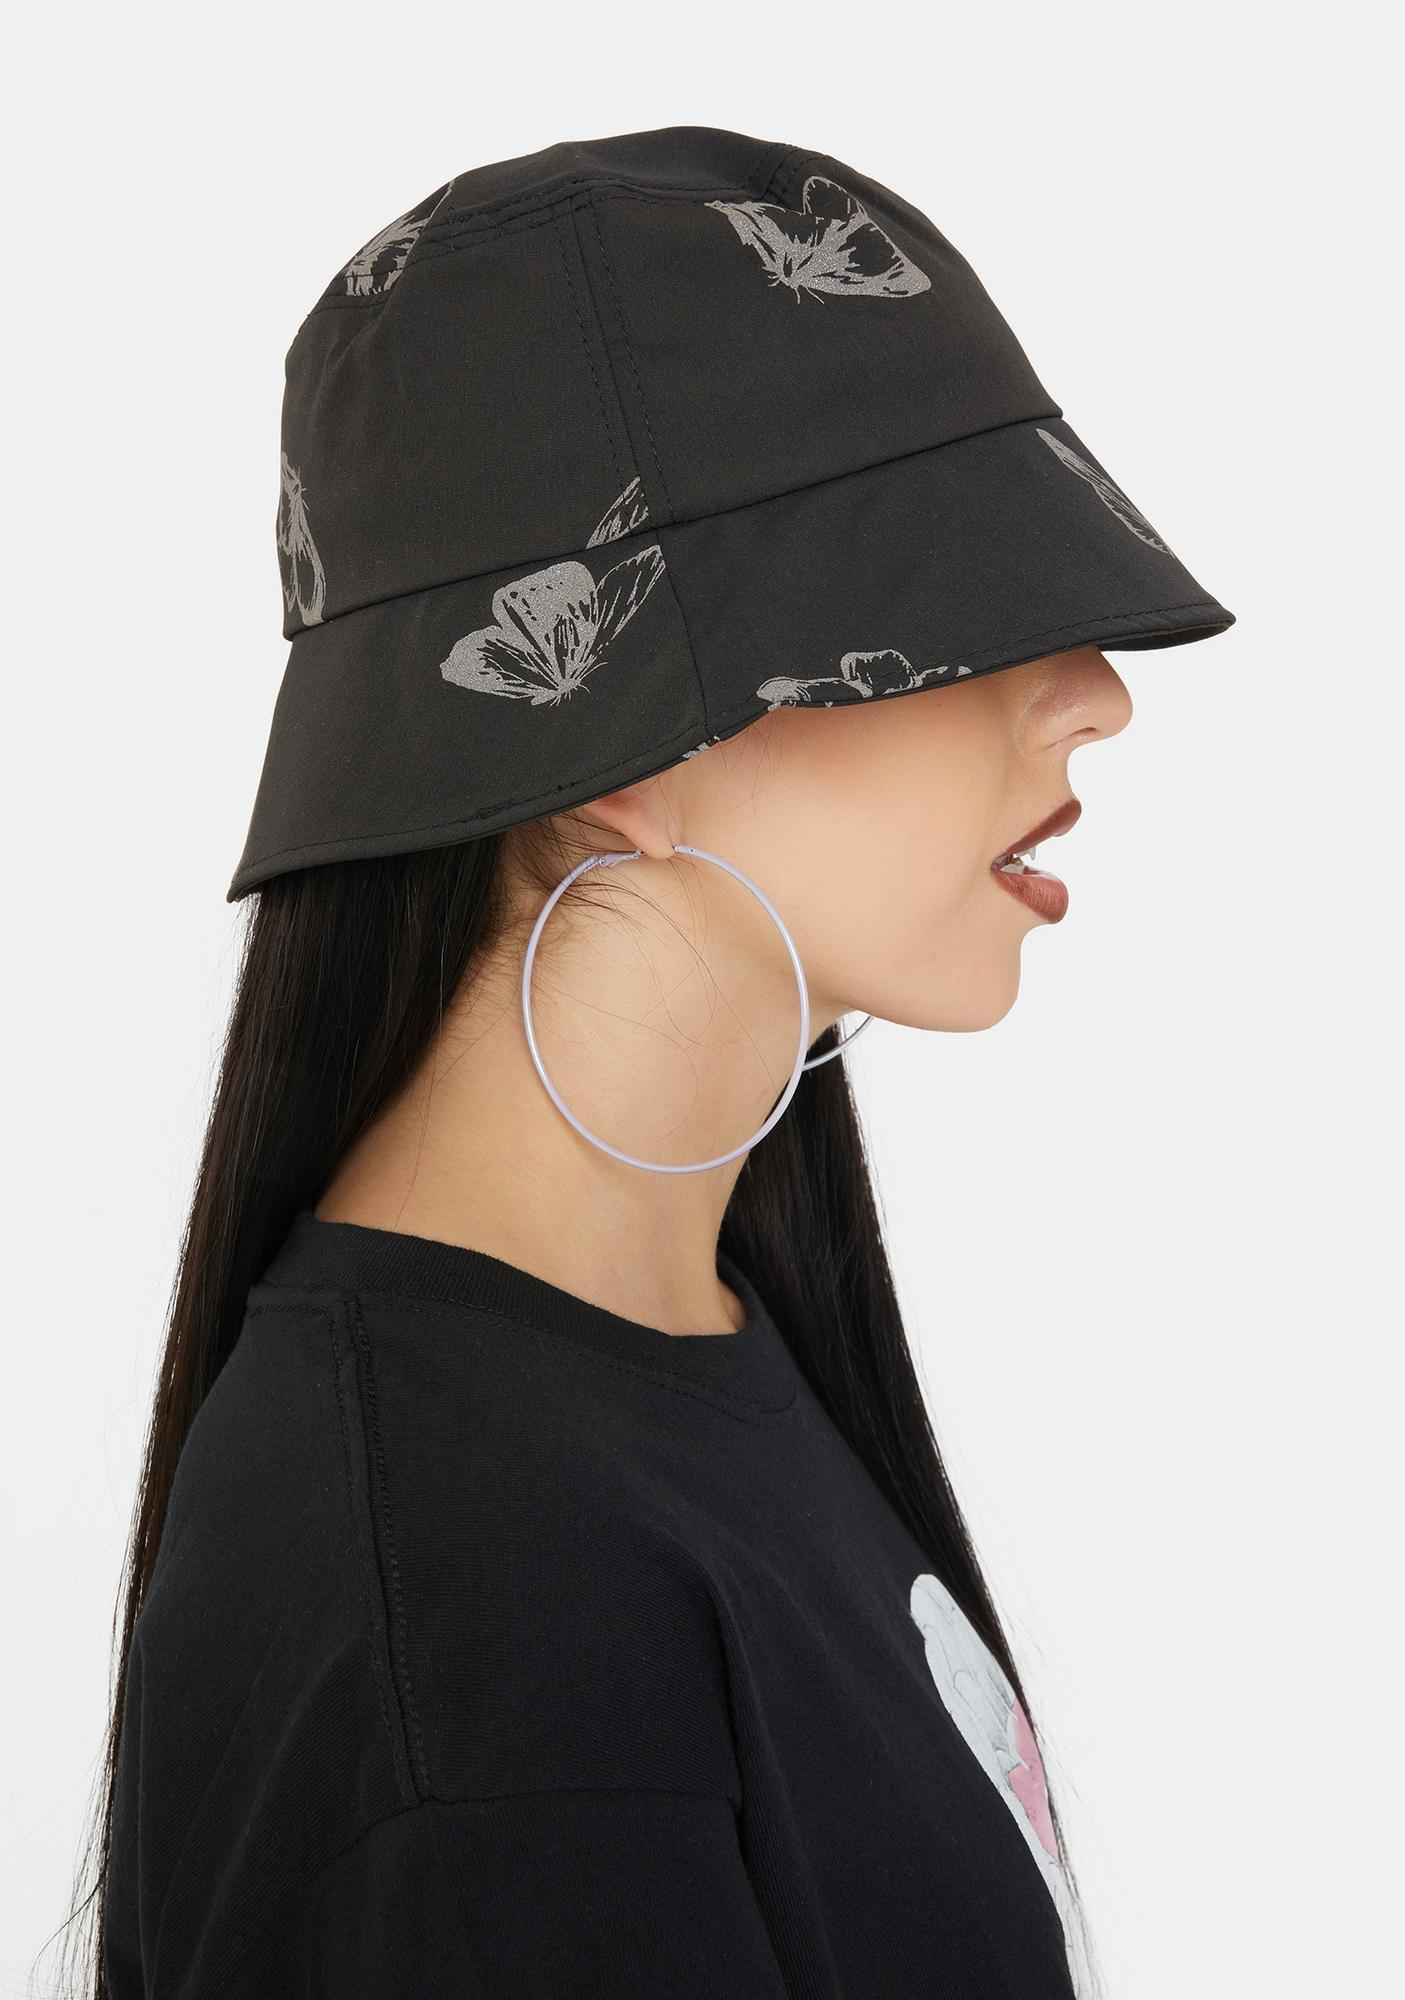 Night Fly Away Reflective Bucket Hat